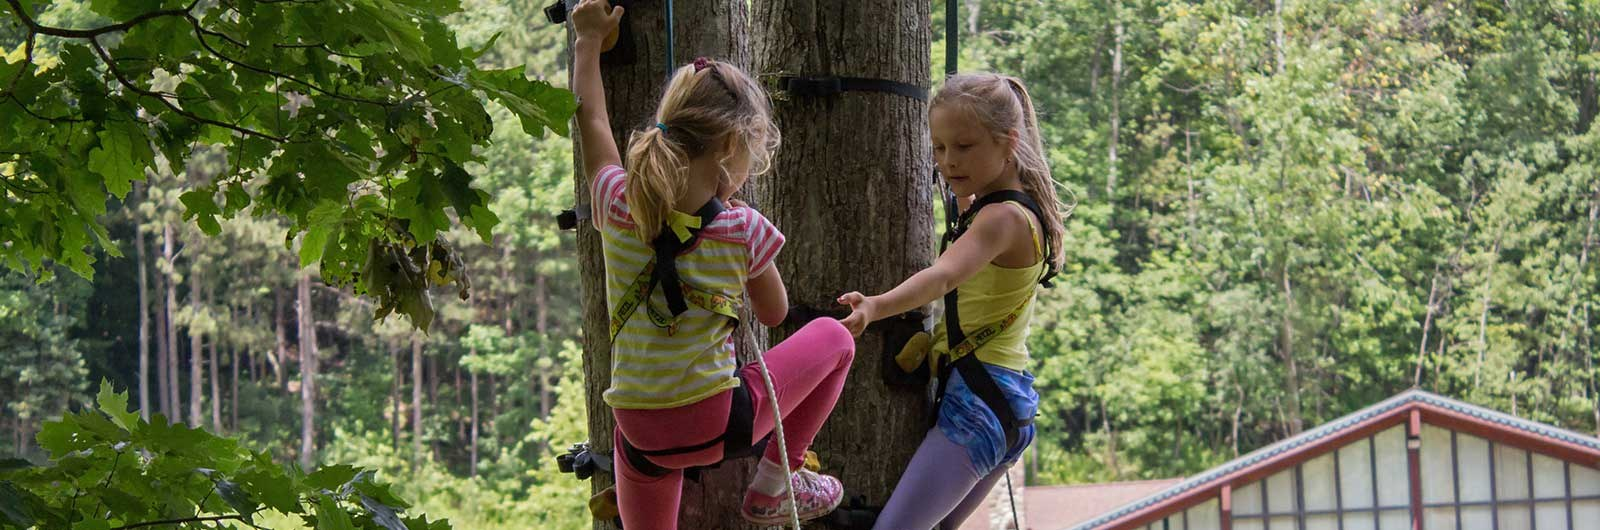 two young girls in the Climbing Forest